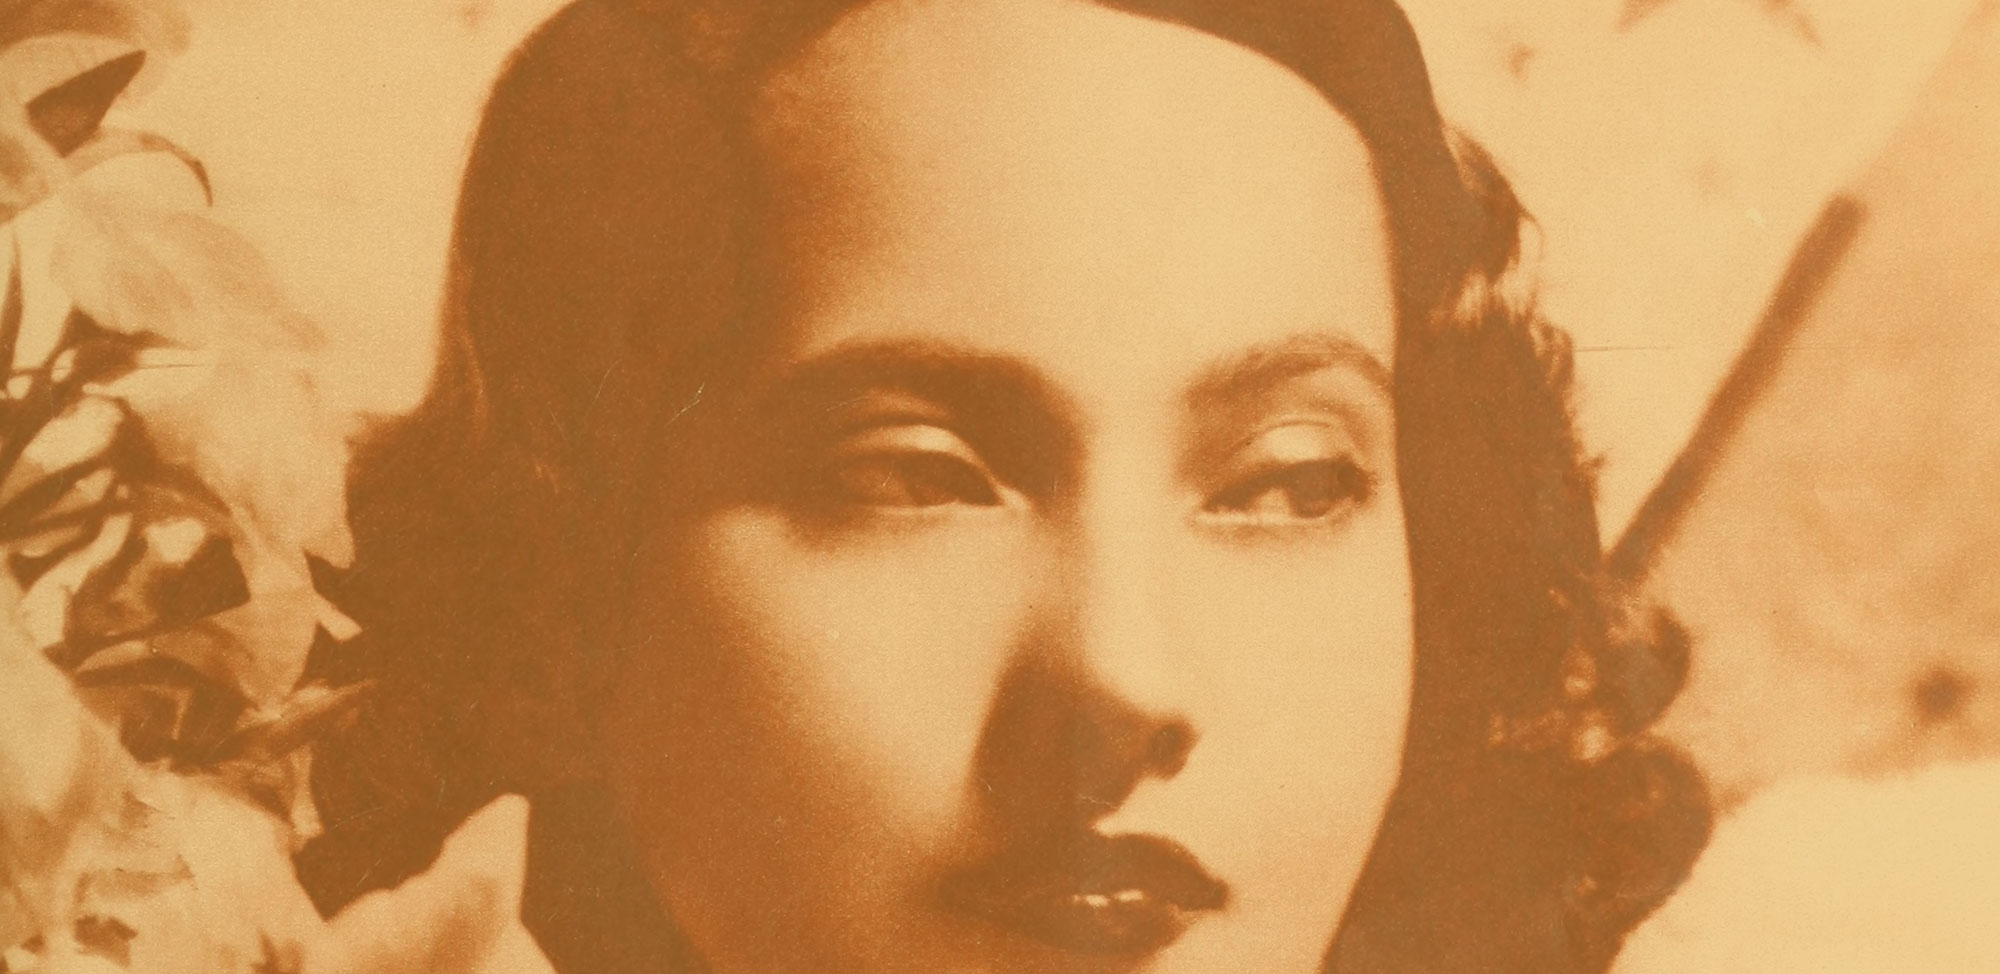 Close up of Merle Oberon's face